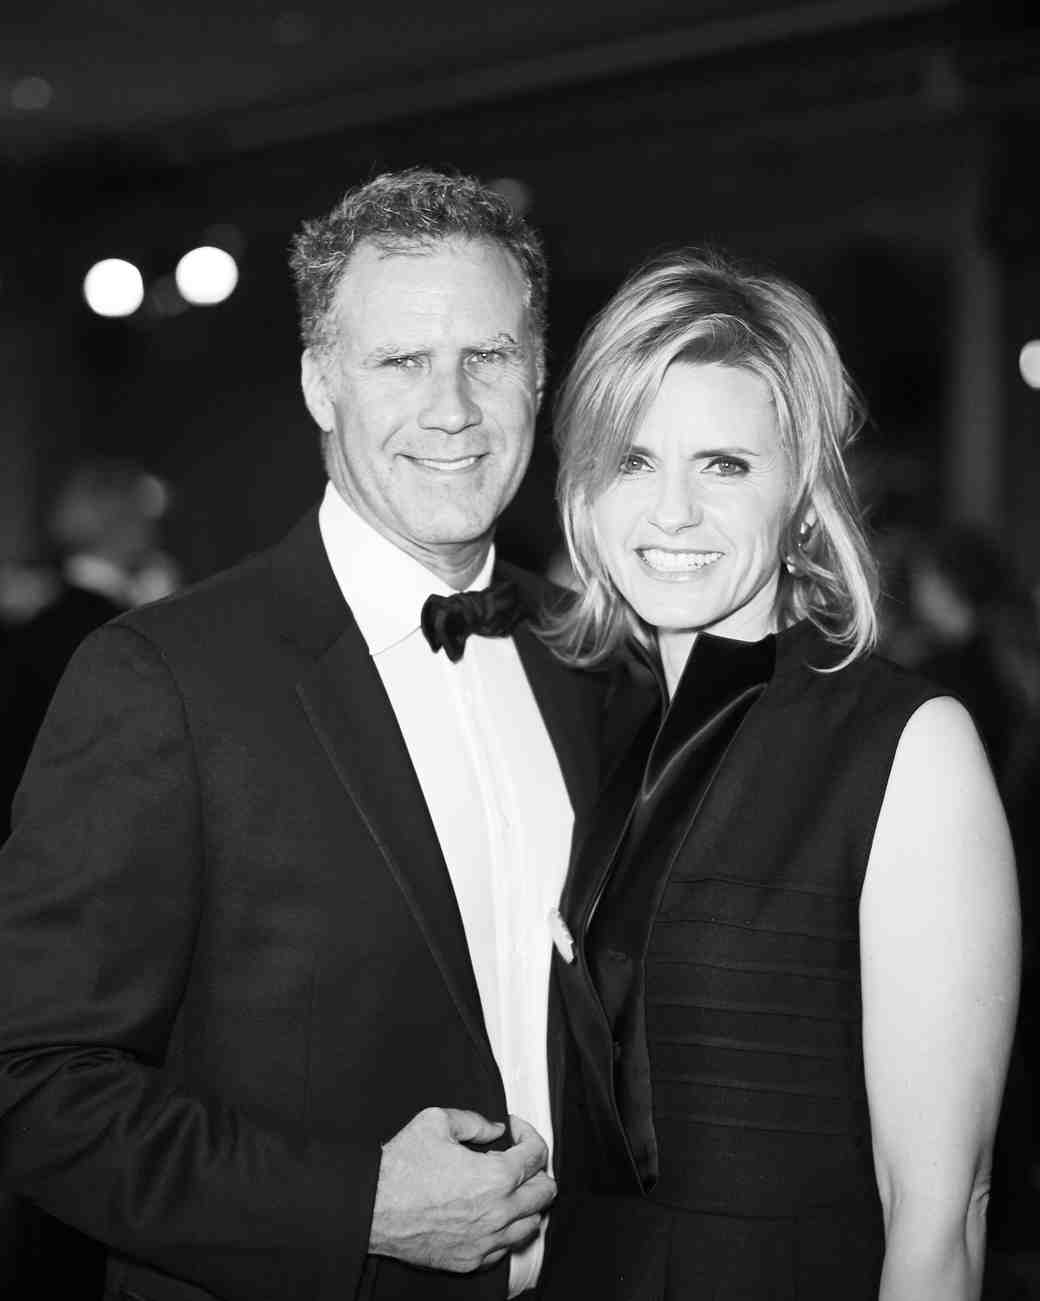 celebrity-marriage-advice-will-ferrell-viveca-paulin-1115.jpg